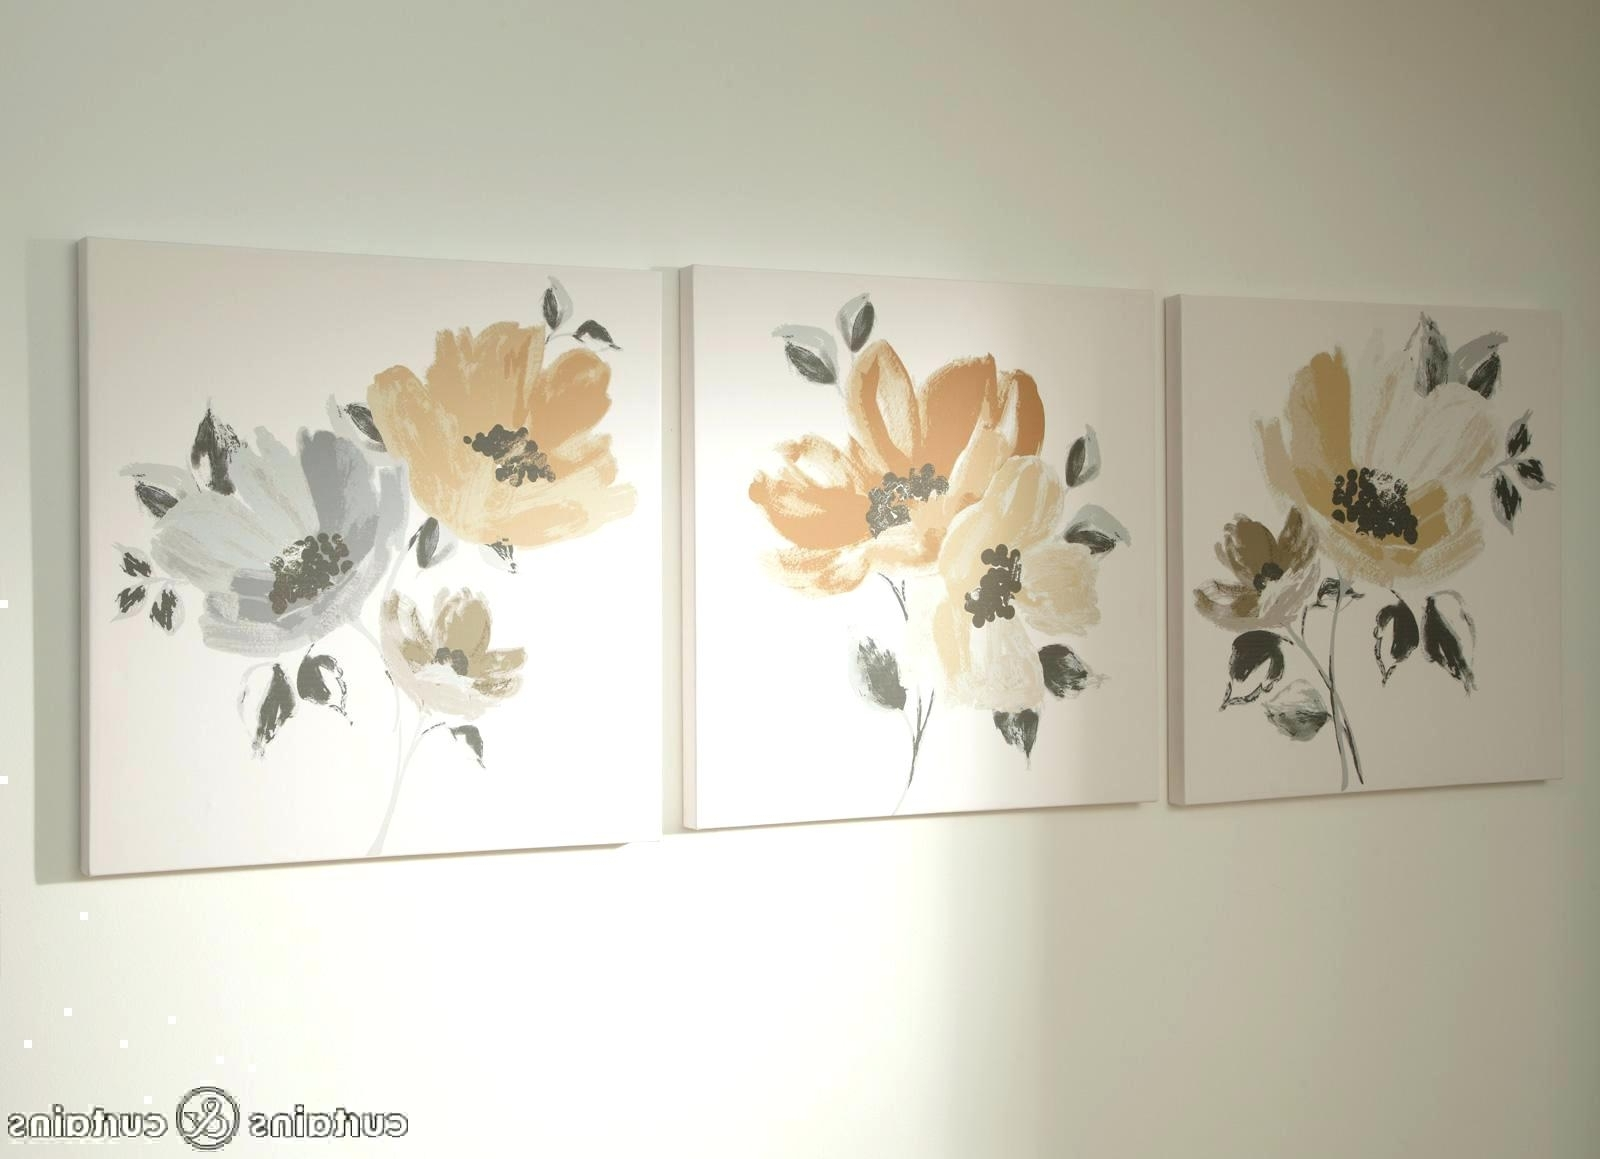 Floral Wall Art Canvas Regarding Trendy Wall Arts: Wall Art And Canvases (View 8 of 15)